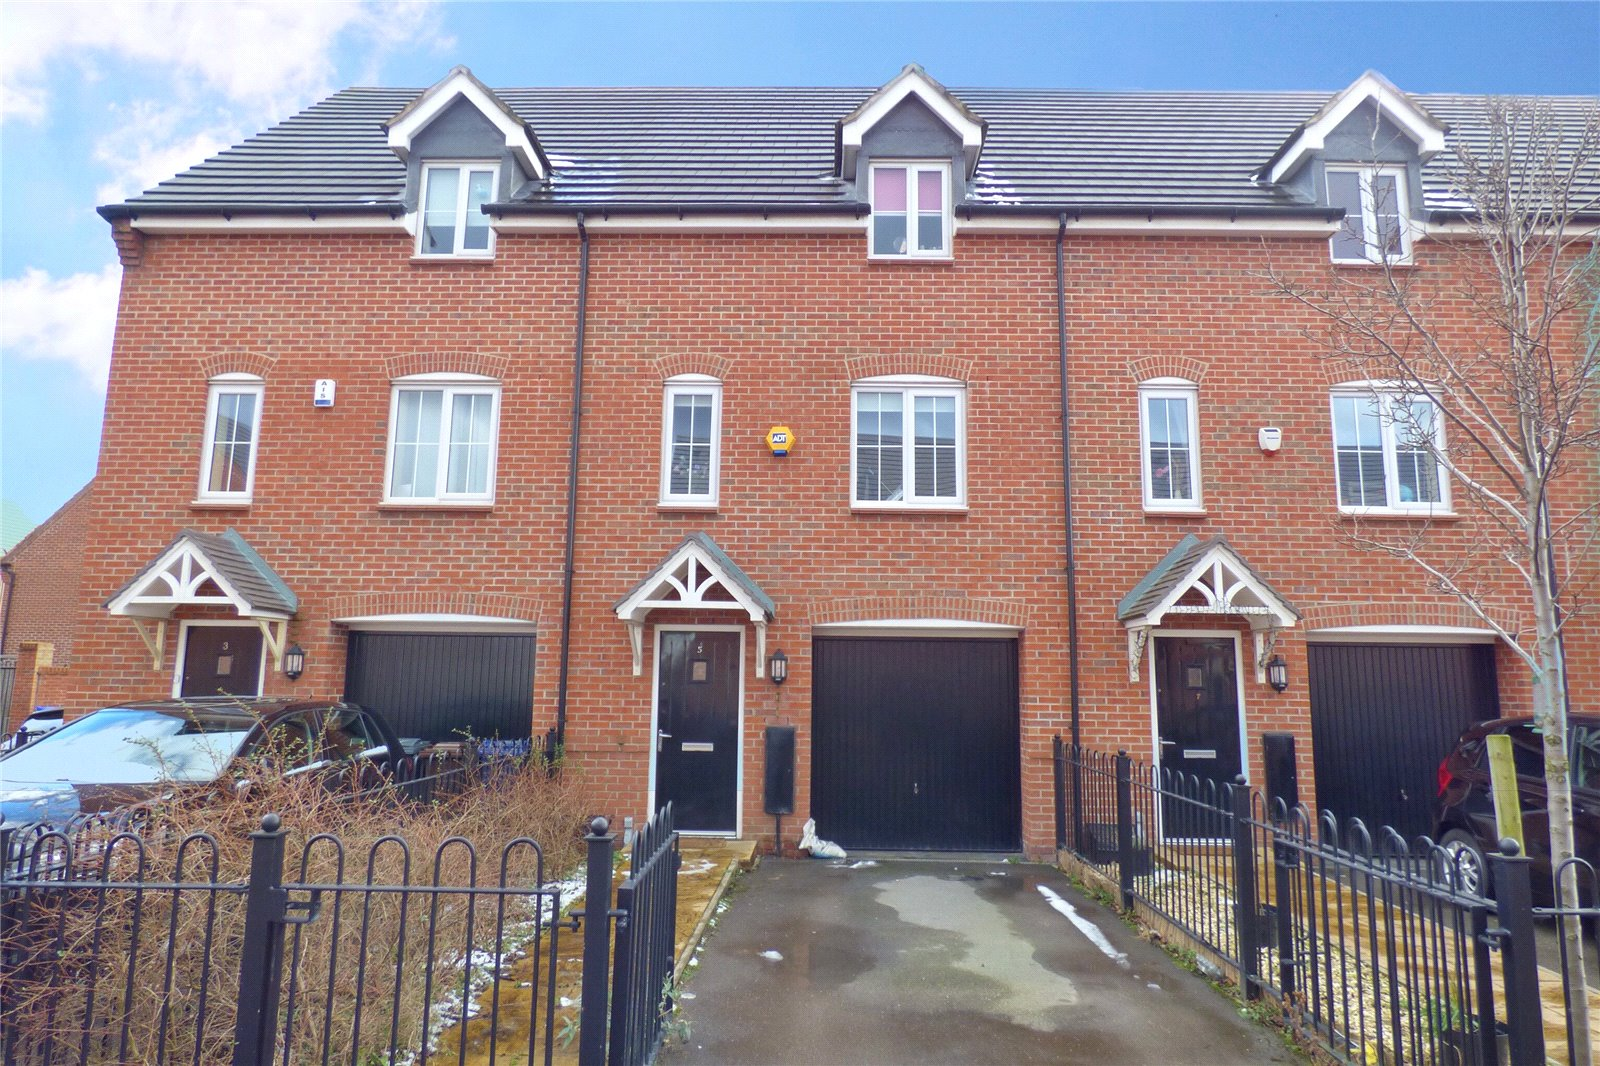 3 Bedrooms Terraced House for sale in Astoria Avenue, Newton Heath, Greater Manchester, M40